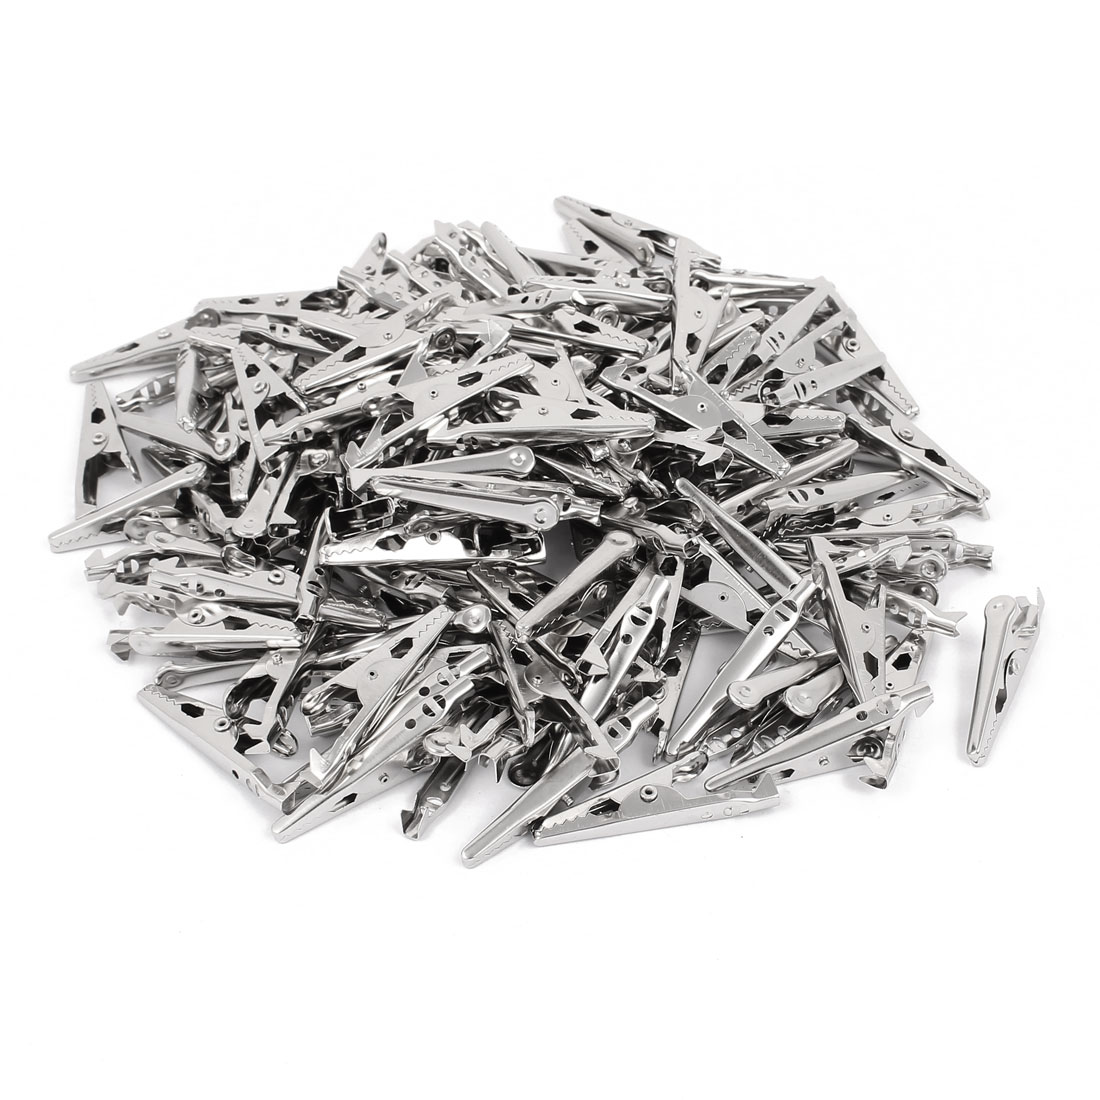 43mm Length Metal Test Alligator Electrical Clip Clamp Connector 140 Pcs